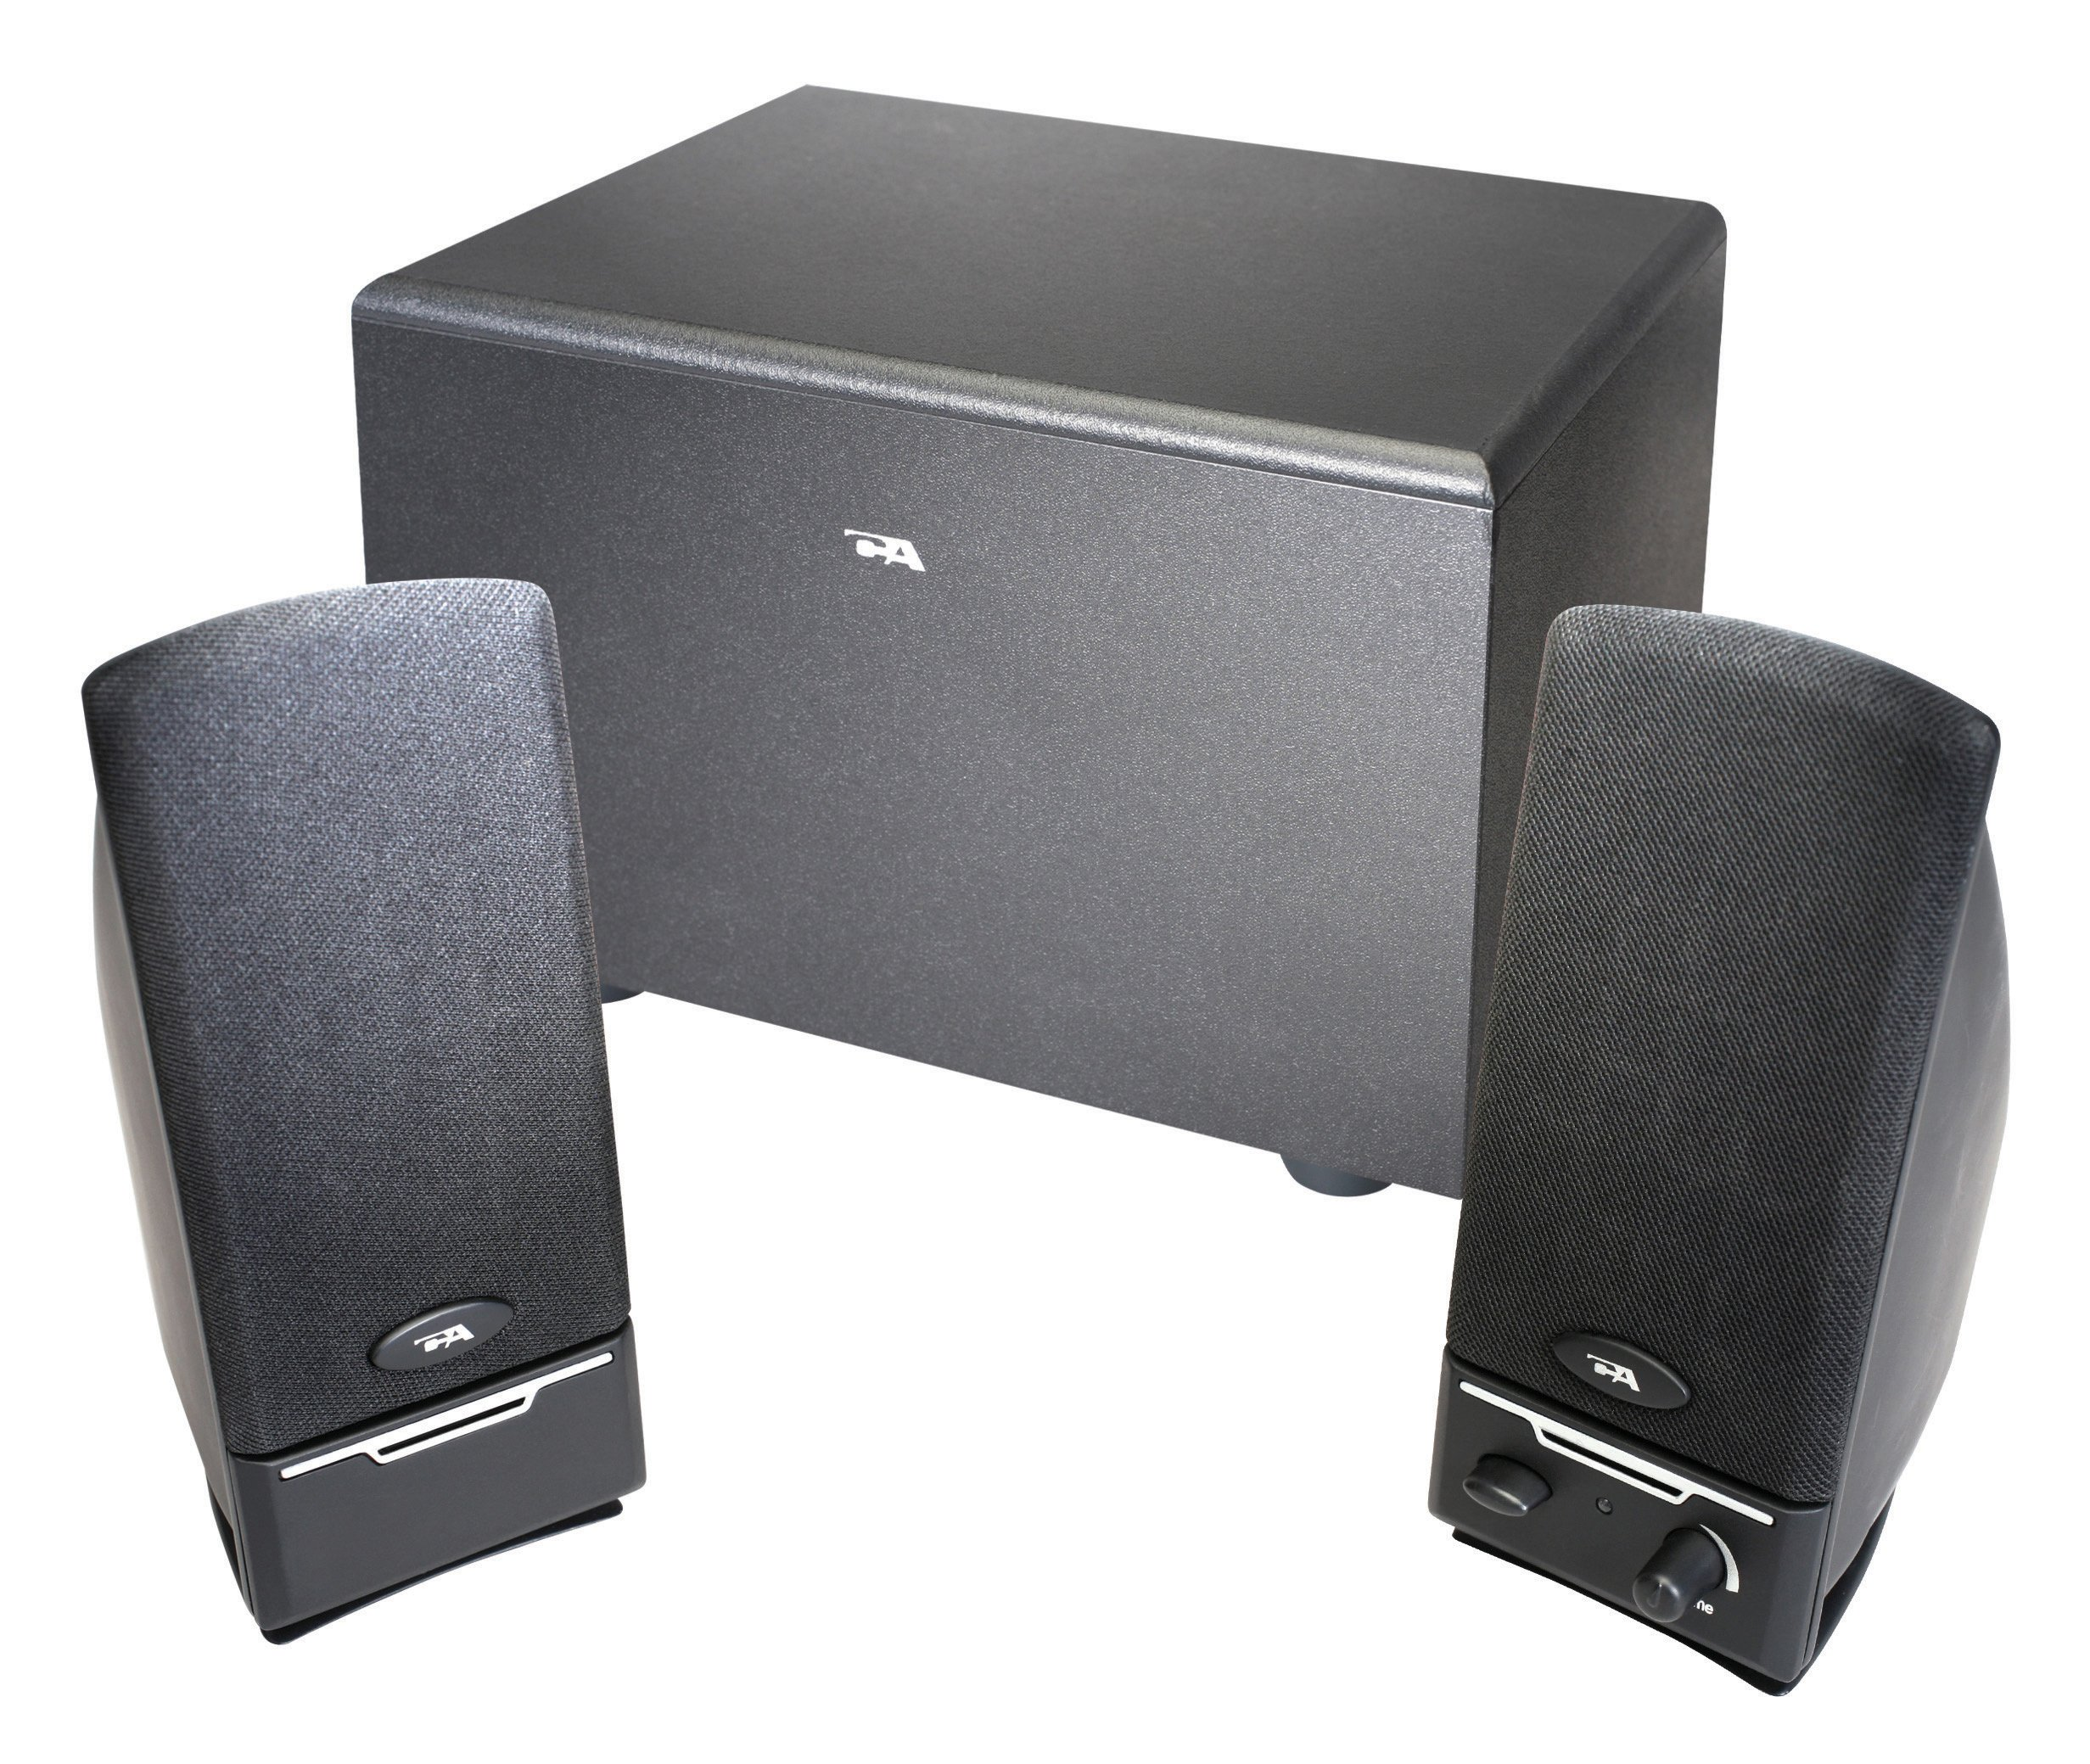 Cyber Acoustics 2.1 PC computer speakers with subwoofer (CA-3000) by Cyber Acoustics (Image #1)